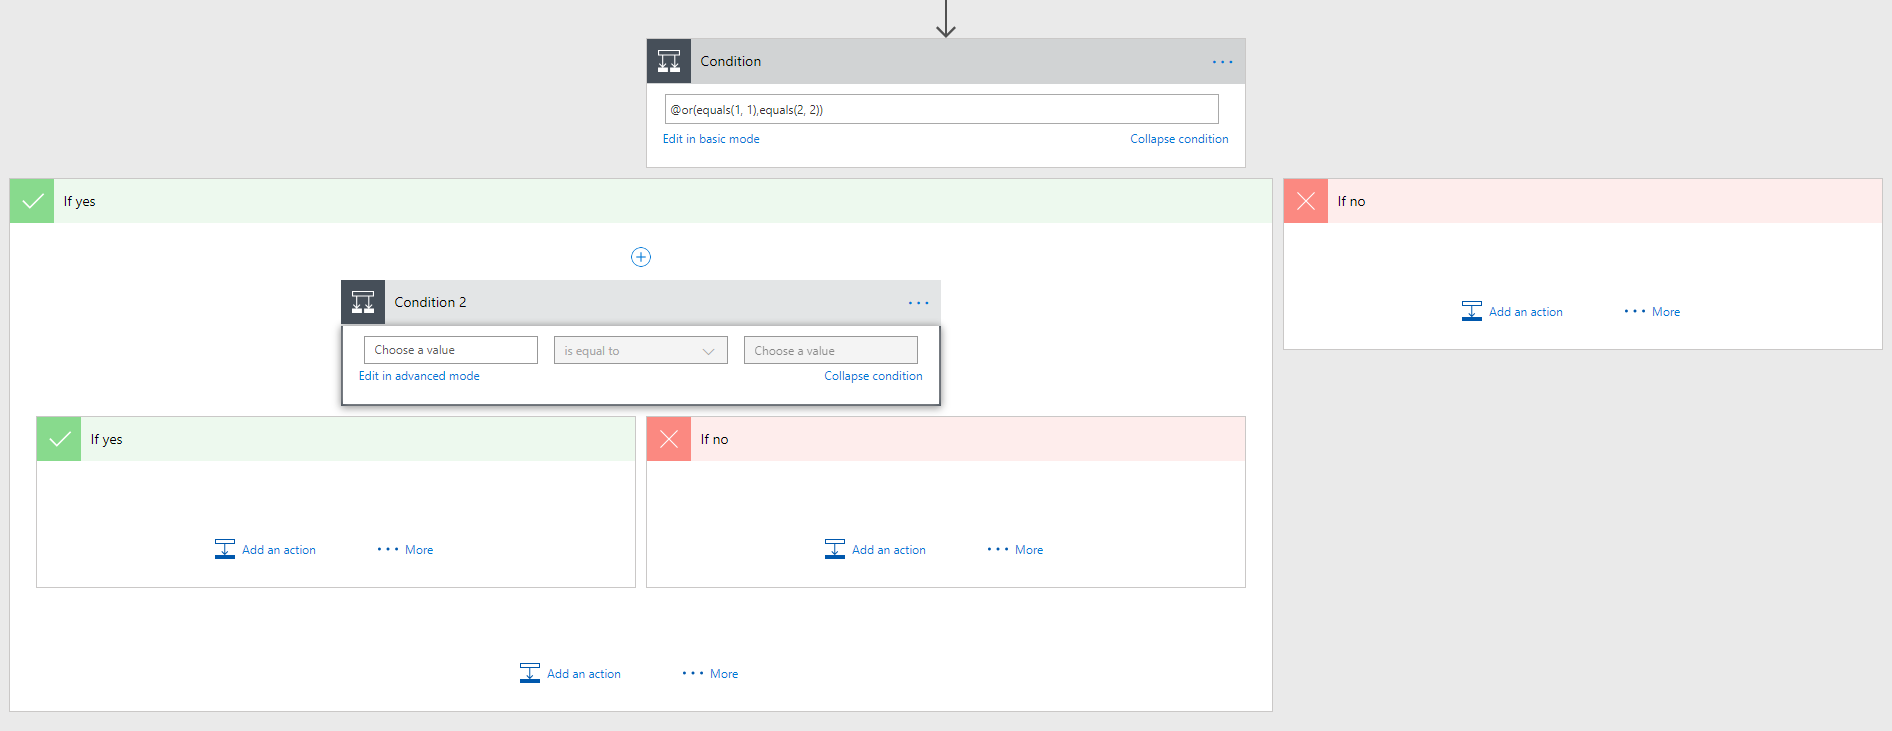 Microsoft Flow – My conditional love in Microsoft Flow